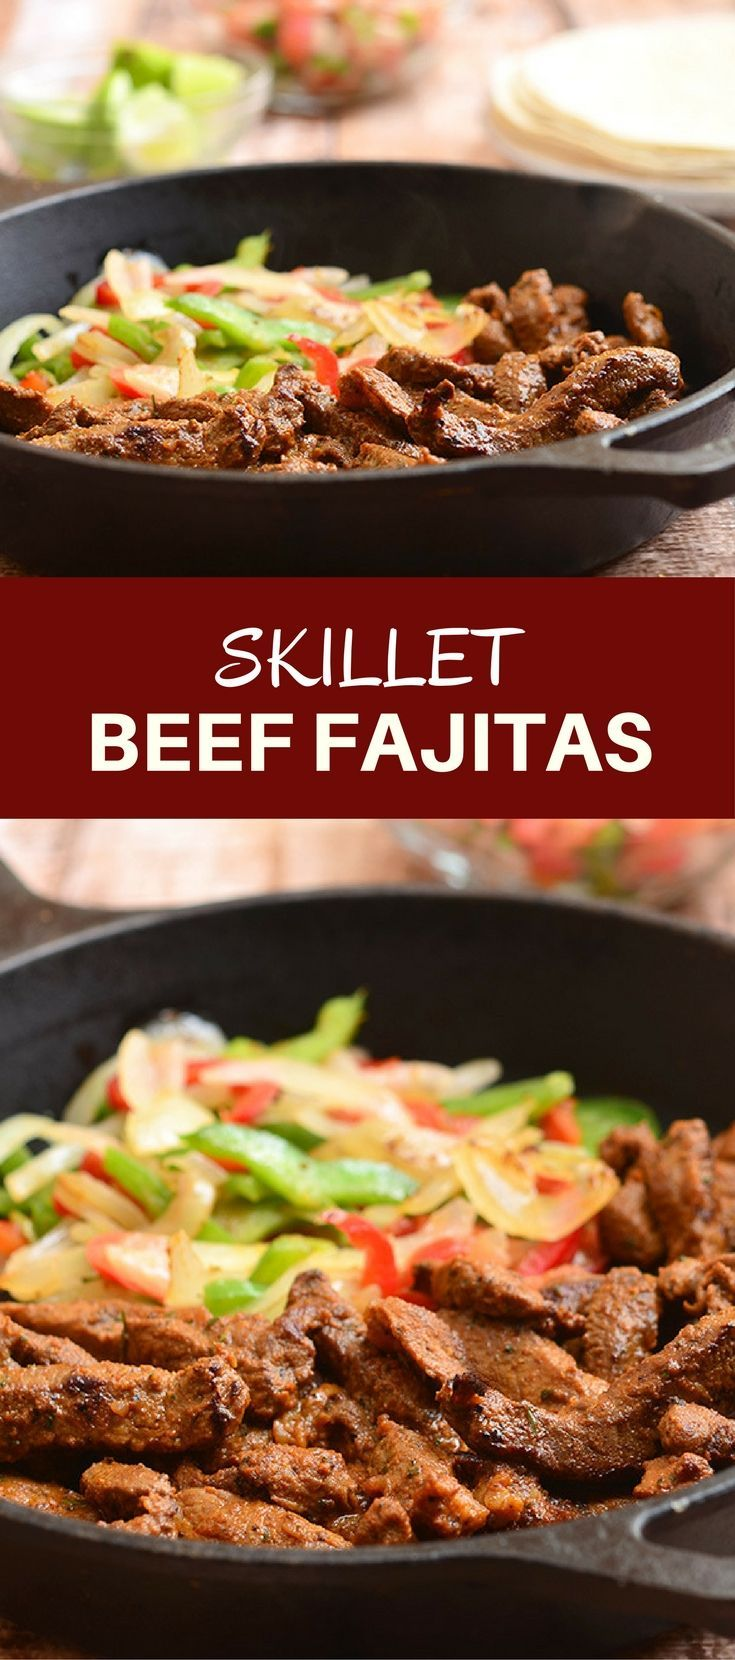 Skillet Beef Fajitas with sirloin, bell peppers, and onions marinated in lime and seasonings and seared to tender perfection. Serve with warm tortillas and your favorite fixings for an amazing Mexican feast!